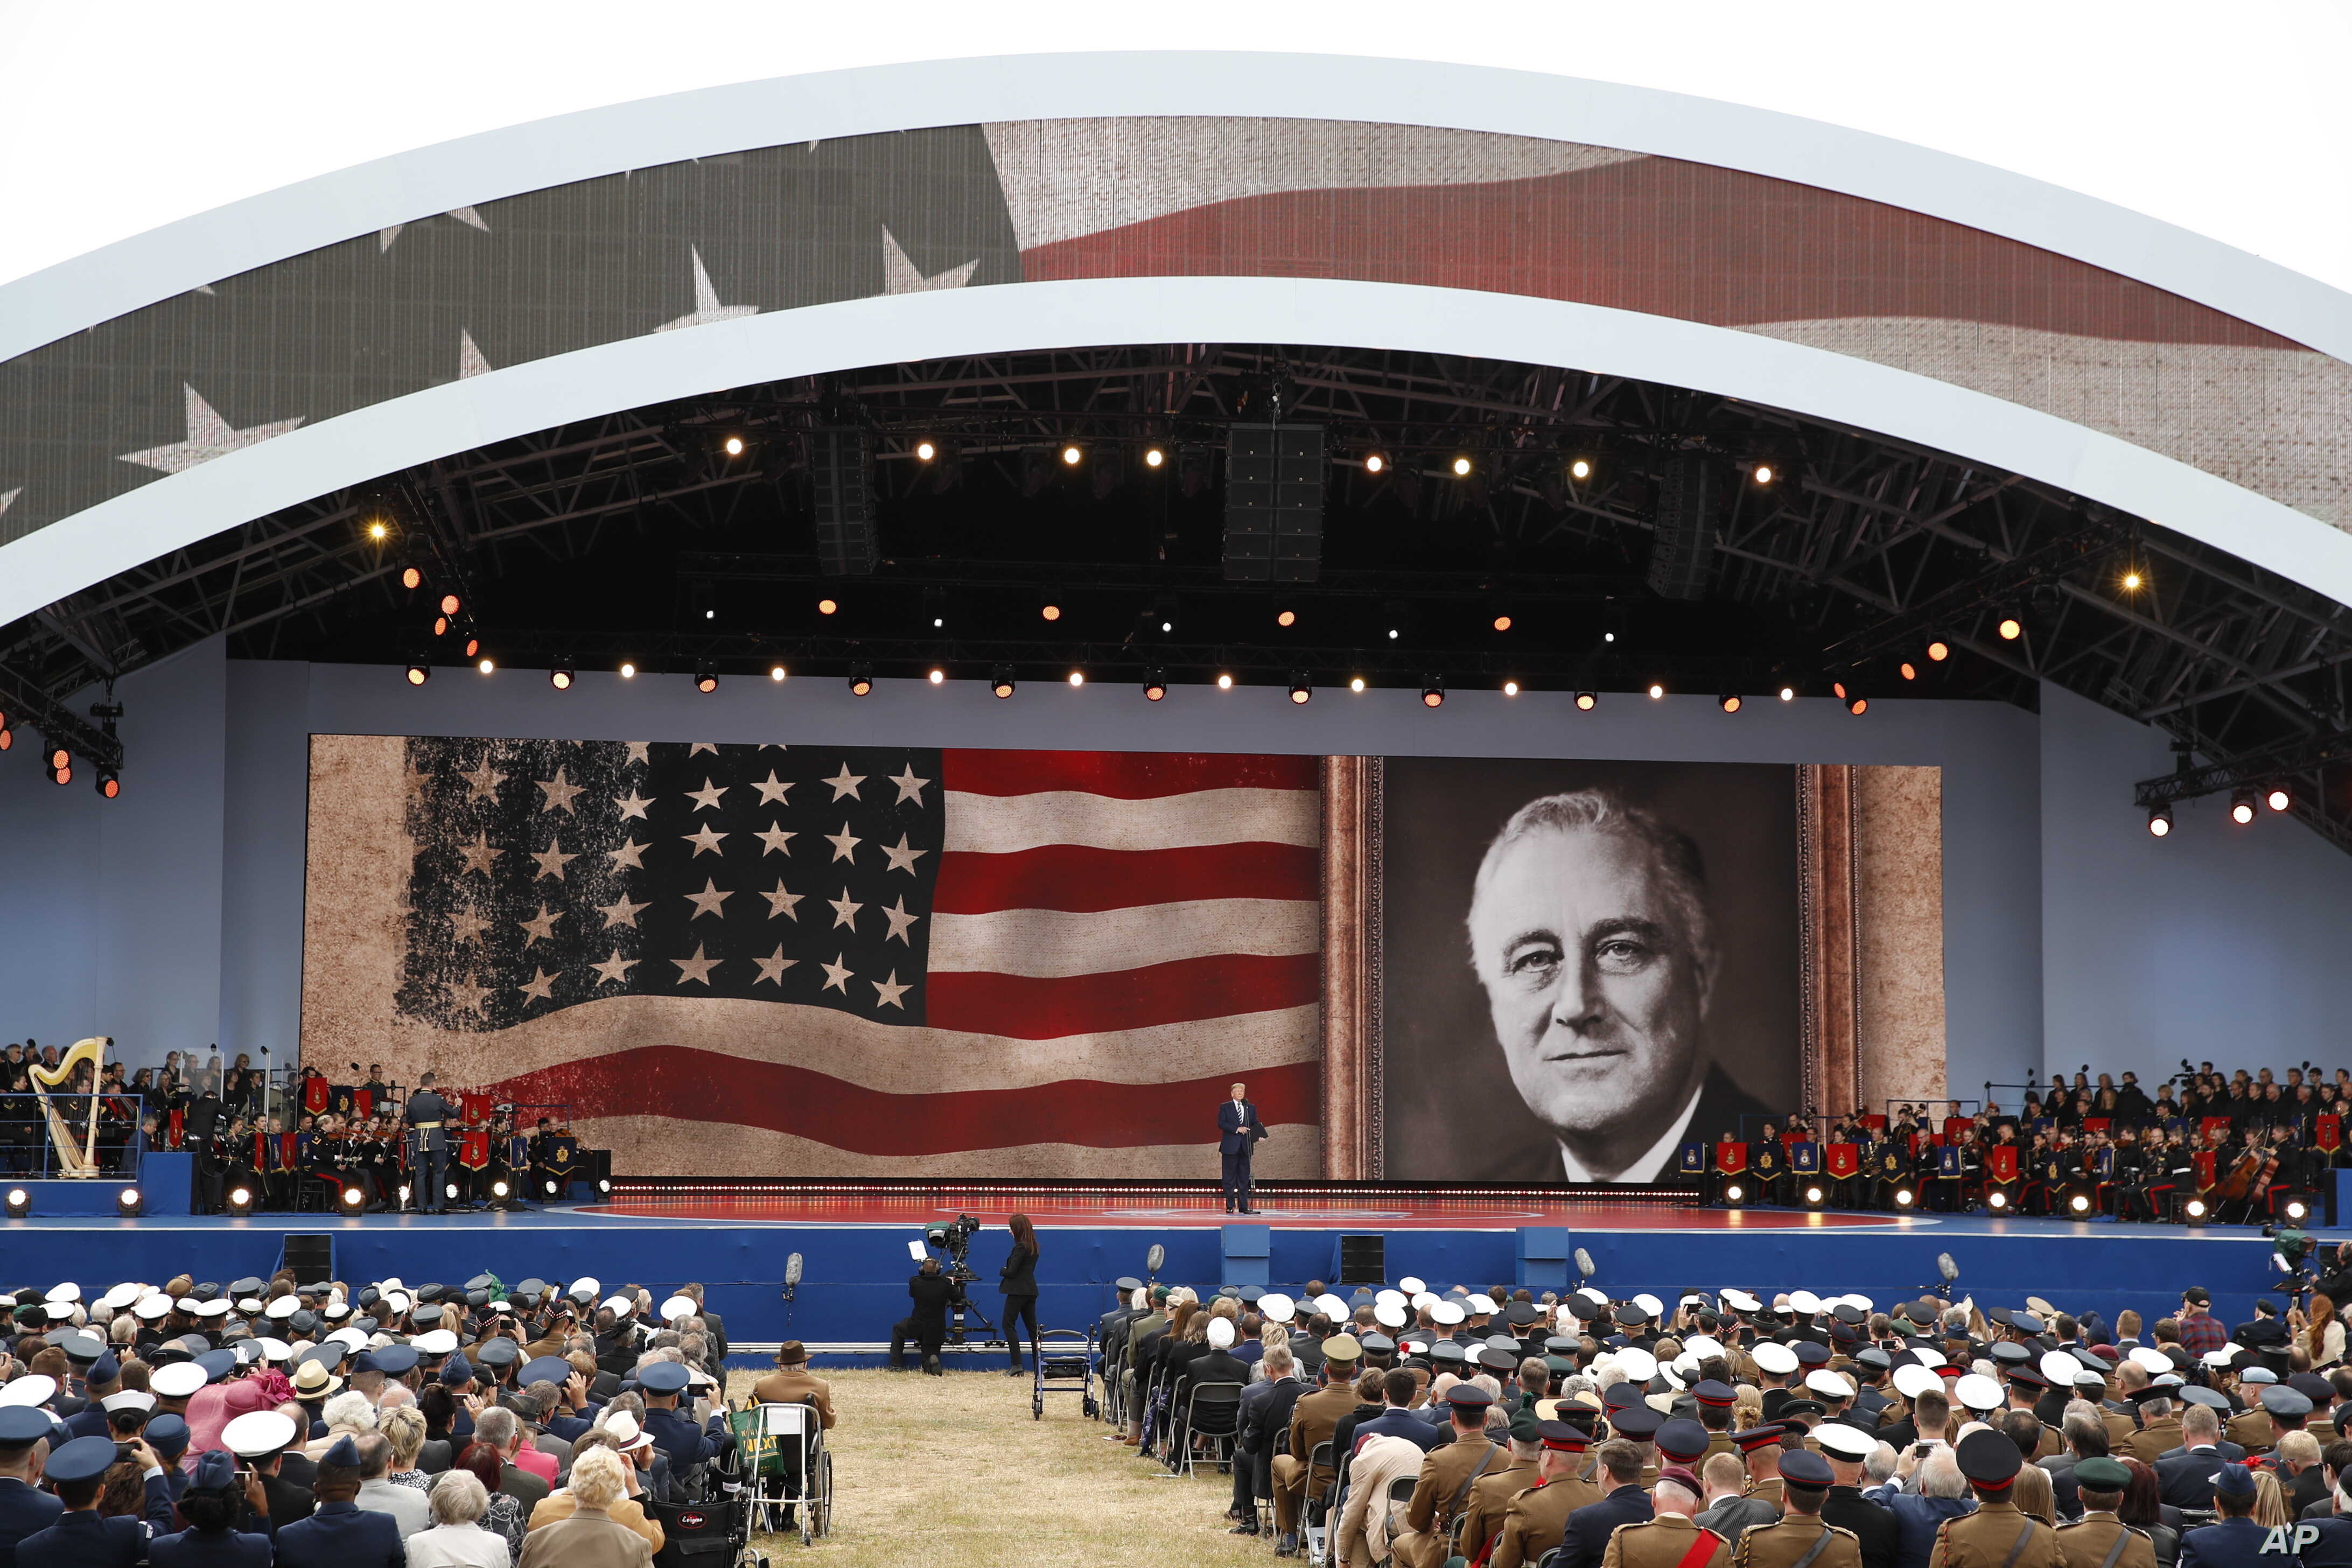 President Donald Trump speaks during a ceremony to mark the 75th Anniversary of D-Day, when the Allied soldiers, sailors and airmen conducted an invasion that helped liberate Europe from Nazi Germany, June 5, 2019, in Portsmouth, England.